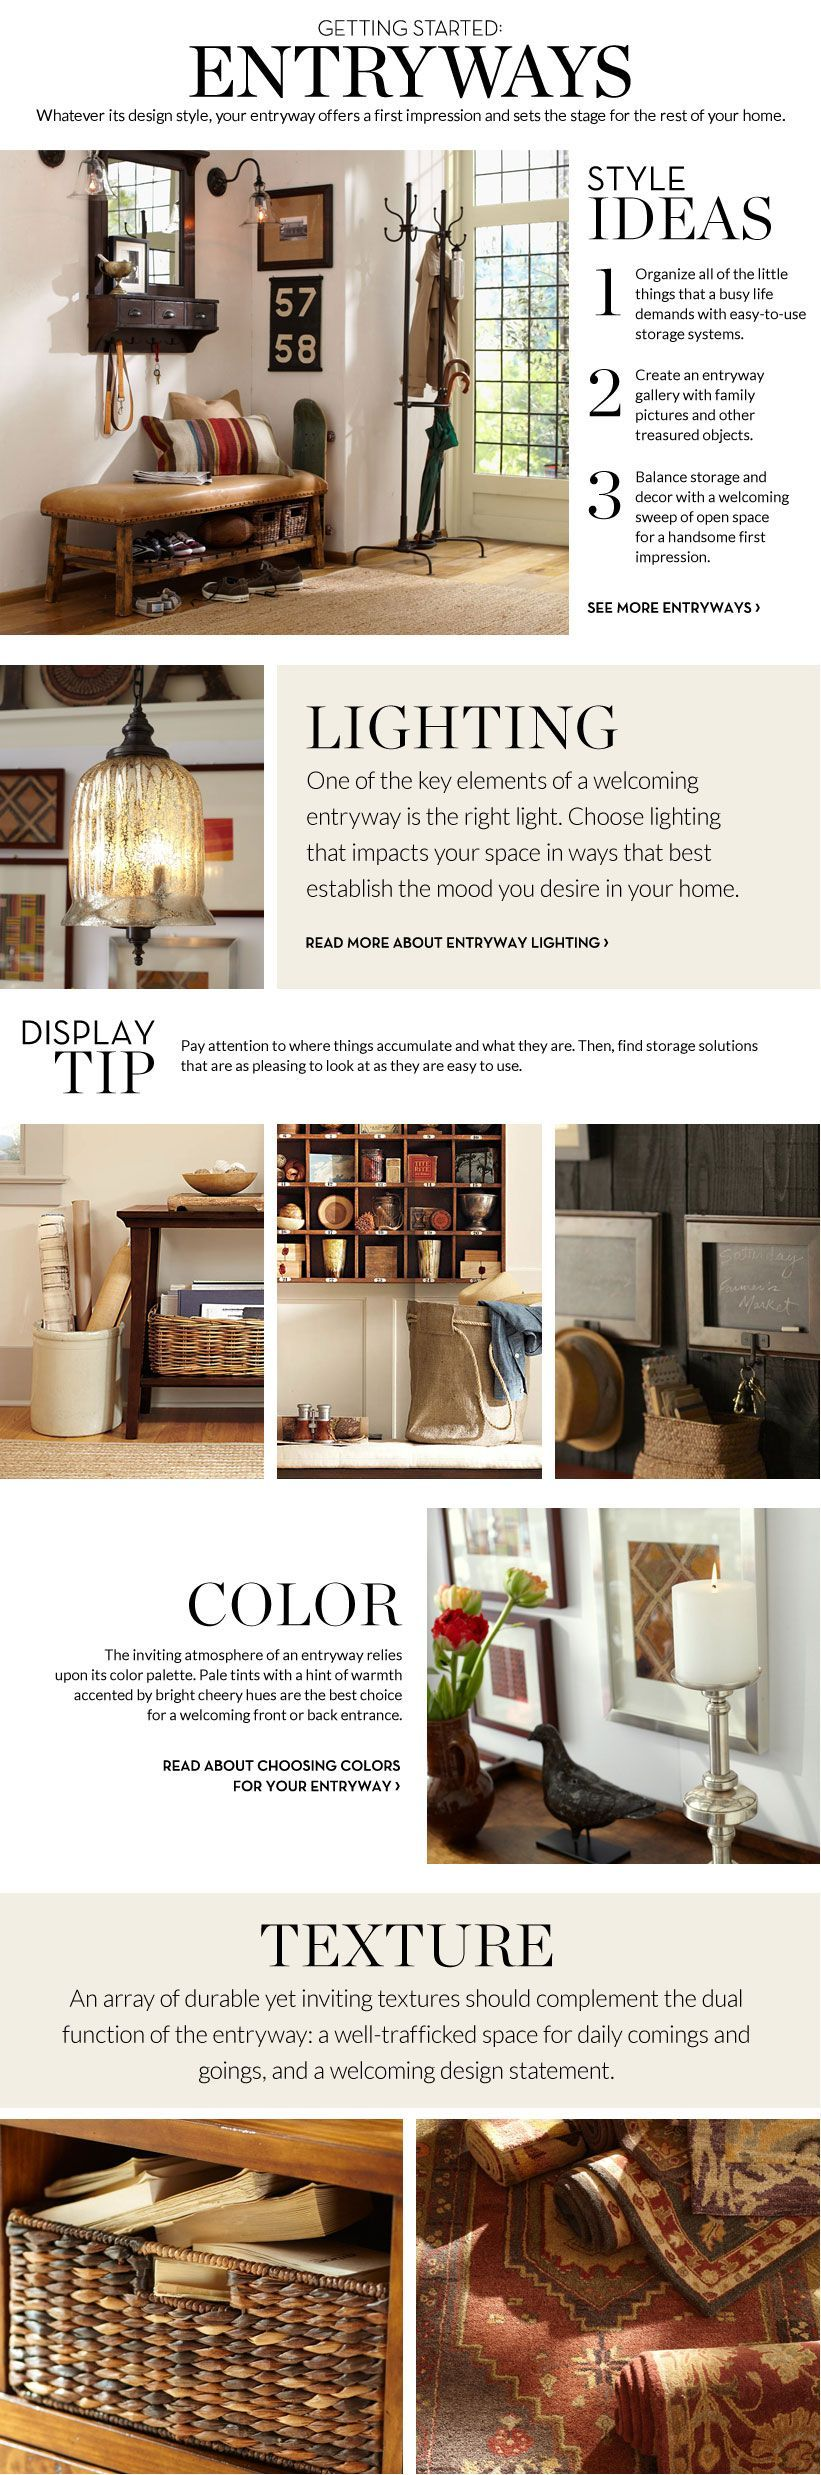 Photo of All Entryway Furniture Entryway and Hallway Decorating Ideas Entryway Furniture